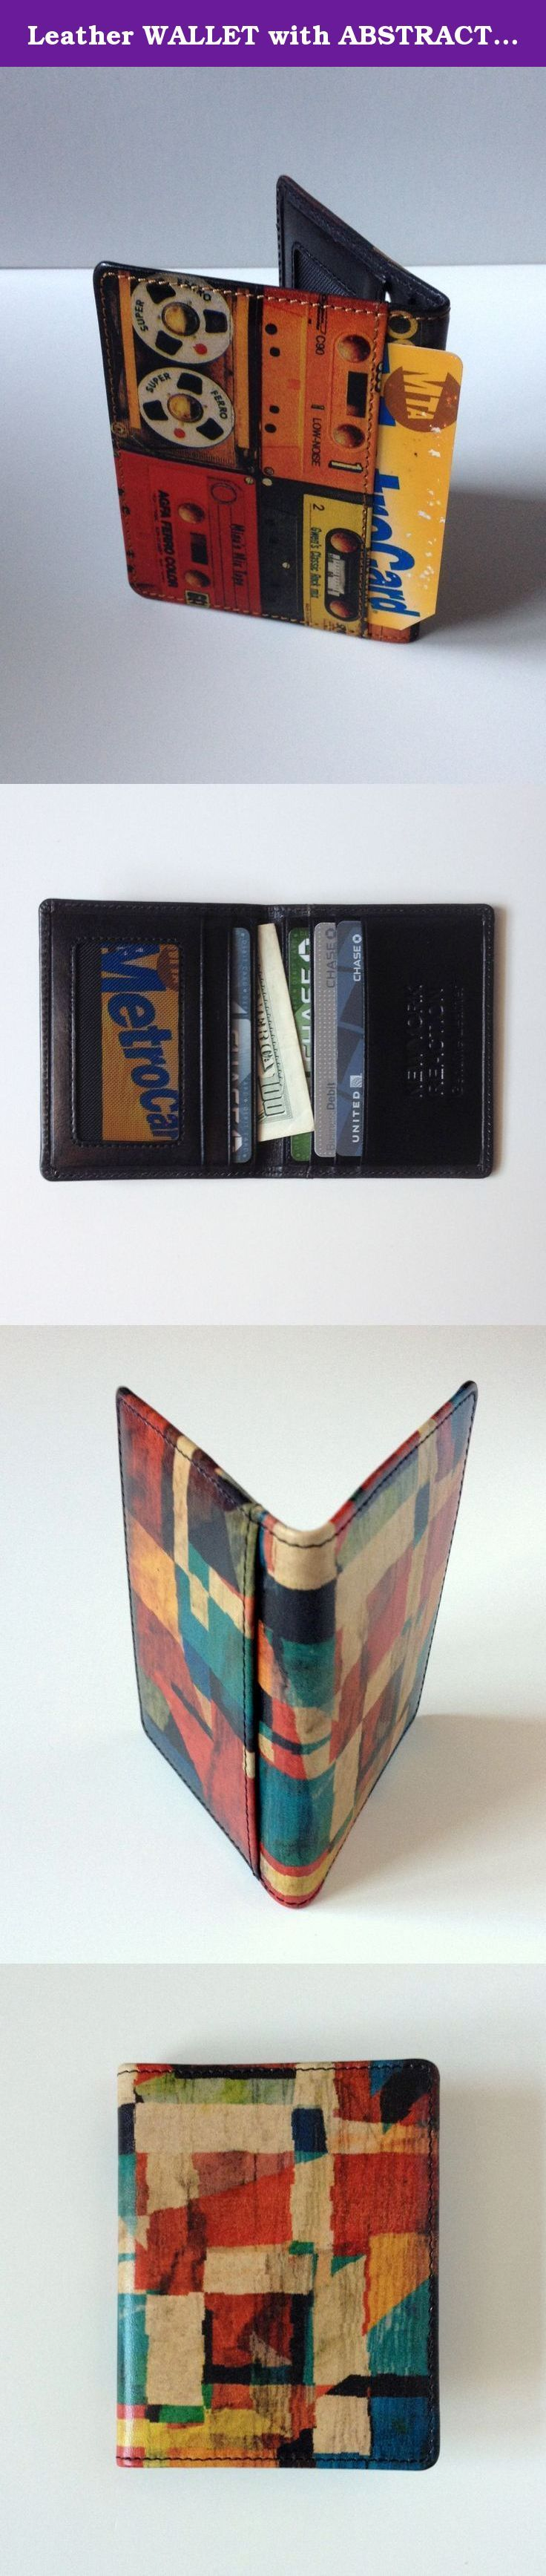 Leather WALLET with ABSTRACT ART DESIGN Slim Card Holder. Colorful Abstract Painting is printed on both sides. HAND CRAFTED...HAND PRINTED...GENUINE LEATHER Small BI FOLD WALLET Folded size App. 3.25 inch x 4 inch 8cm x 10.5cm 4 Card Slots inside ( 3 on one side and 1 on the other side ) 2 inner pocket for Cash / ID / Driver's License,etc. 1 outside Window Pocket on the back for ID /Driver's License etc (shown in the pics) Each pocket is beautifully lined. Hand made using traditional…